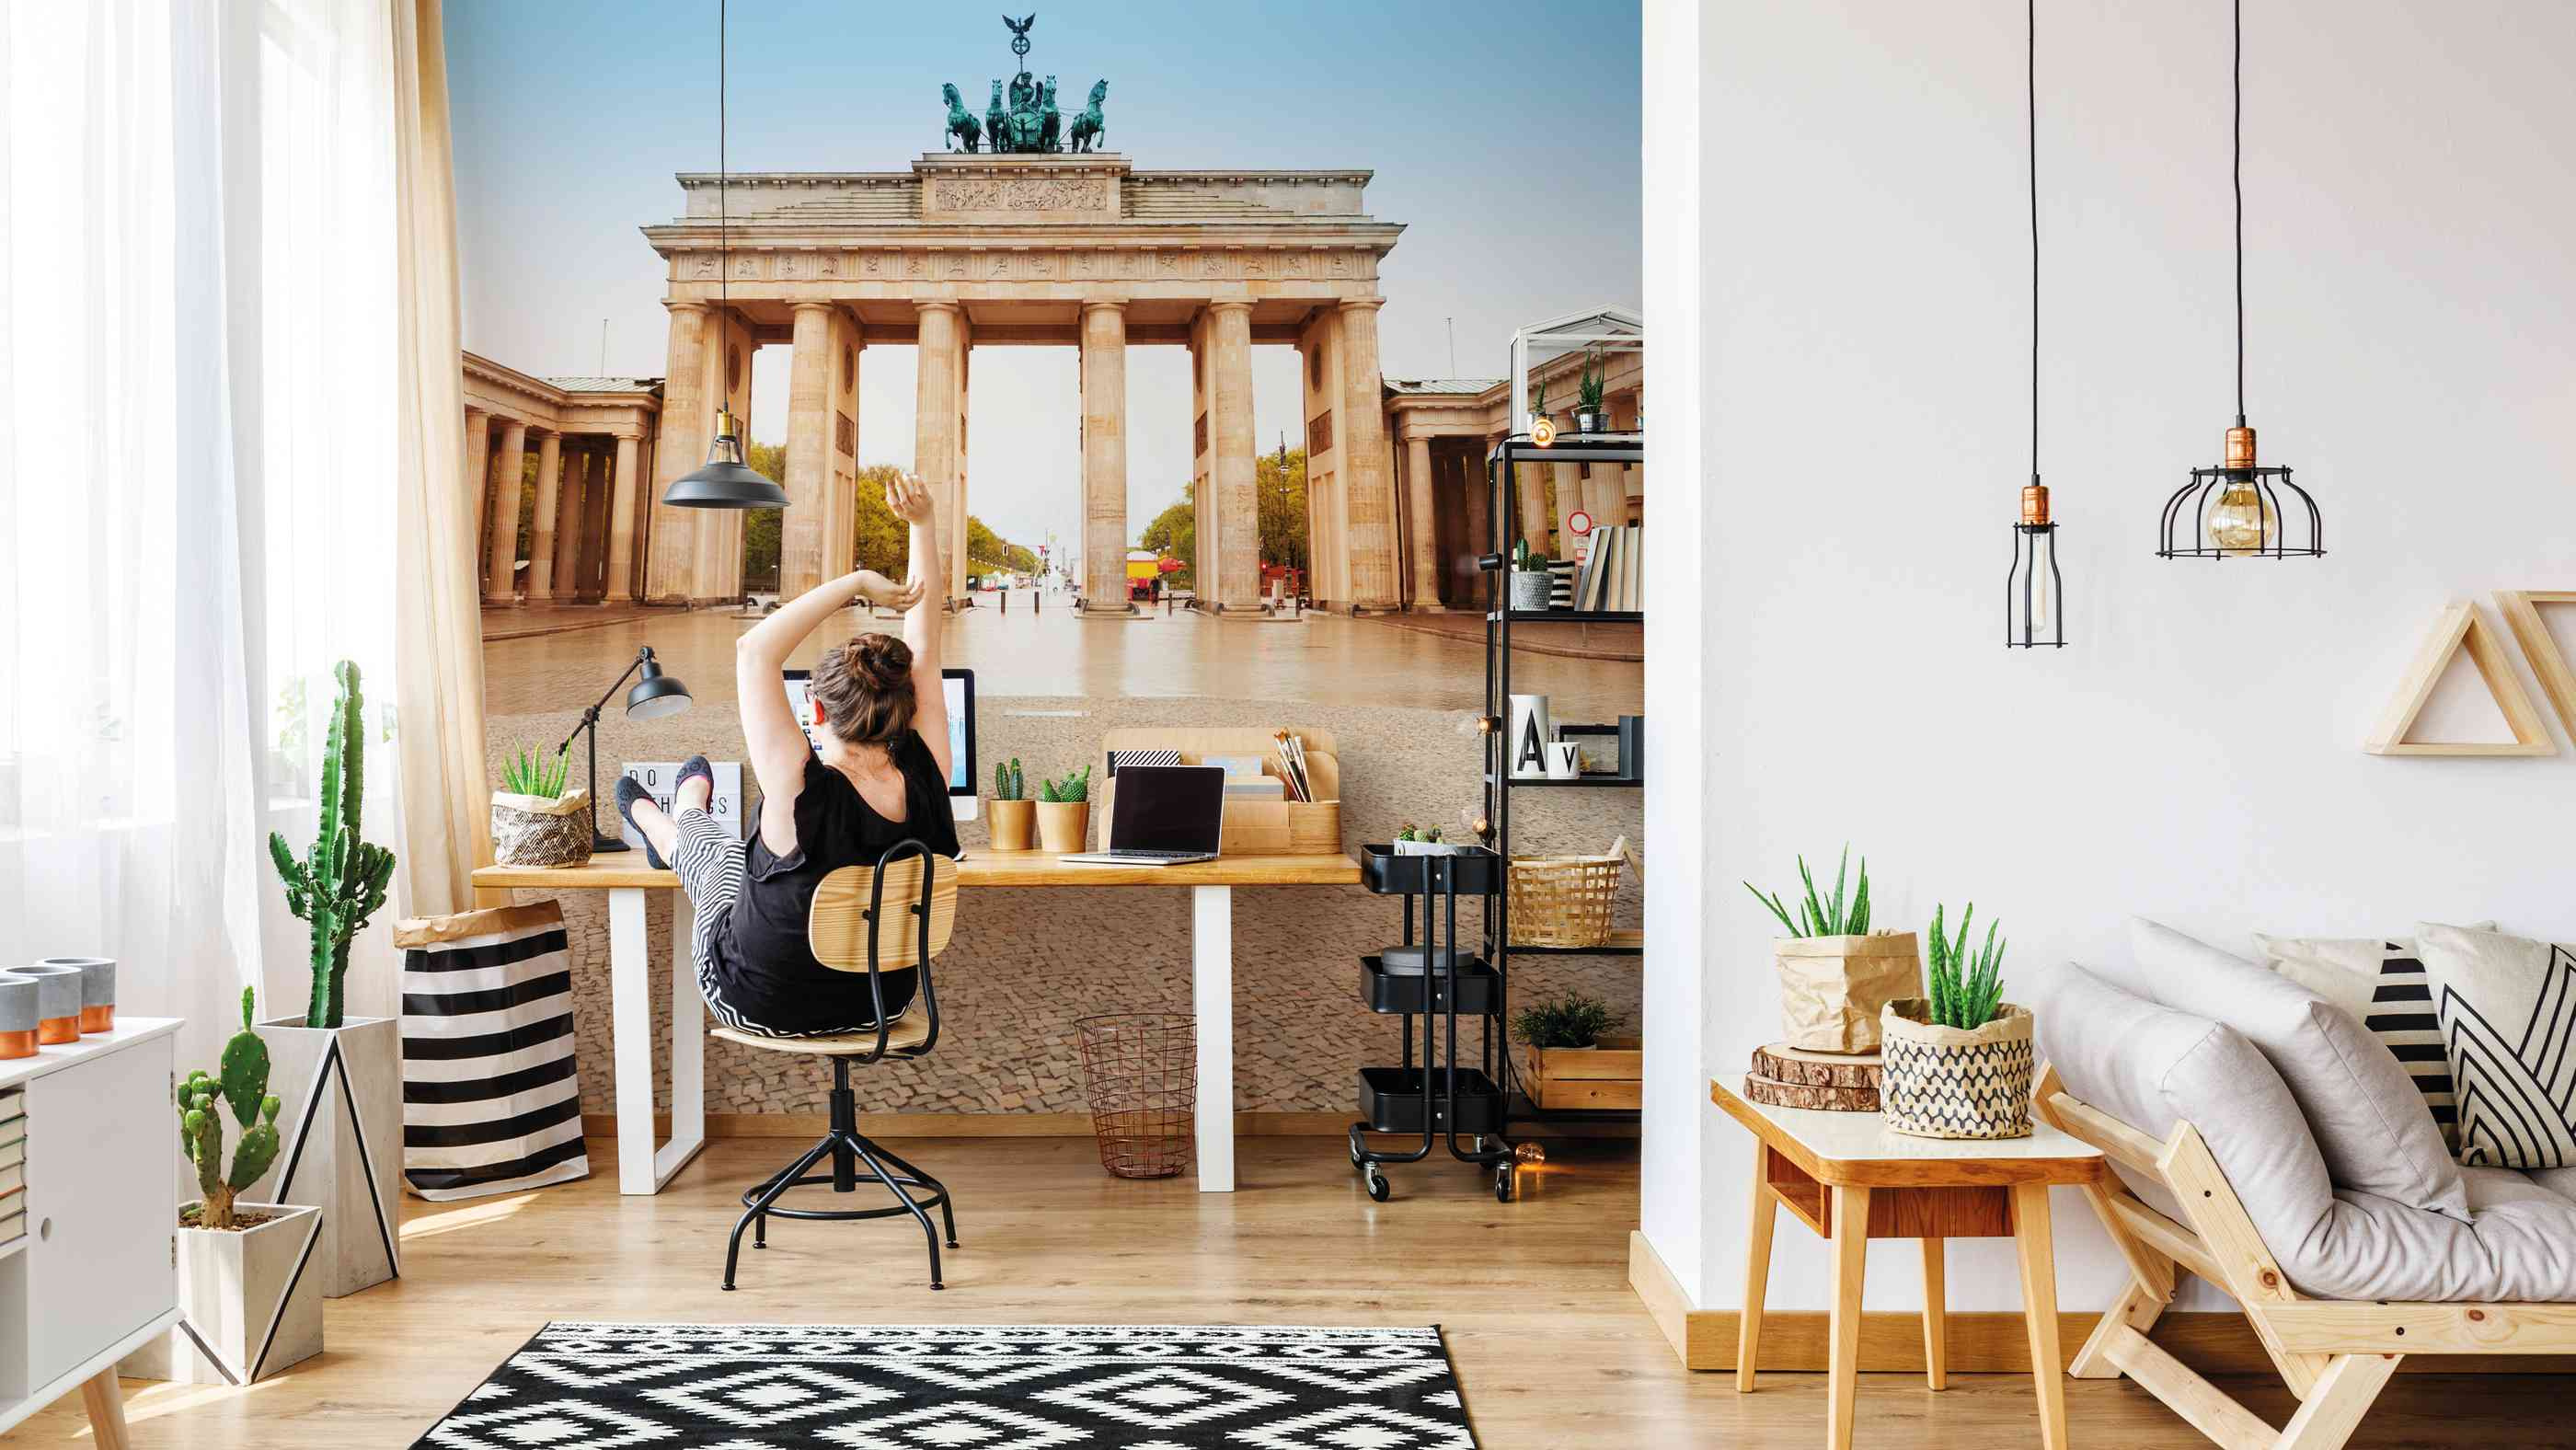 Young creative artist working at desk in her cozy apartment in natural botanic style with plants, black storage cart, wooden floor and trendy hipster decorations